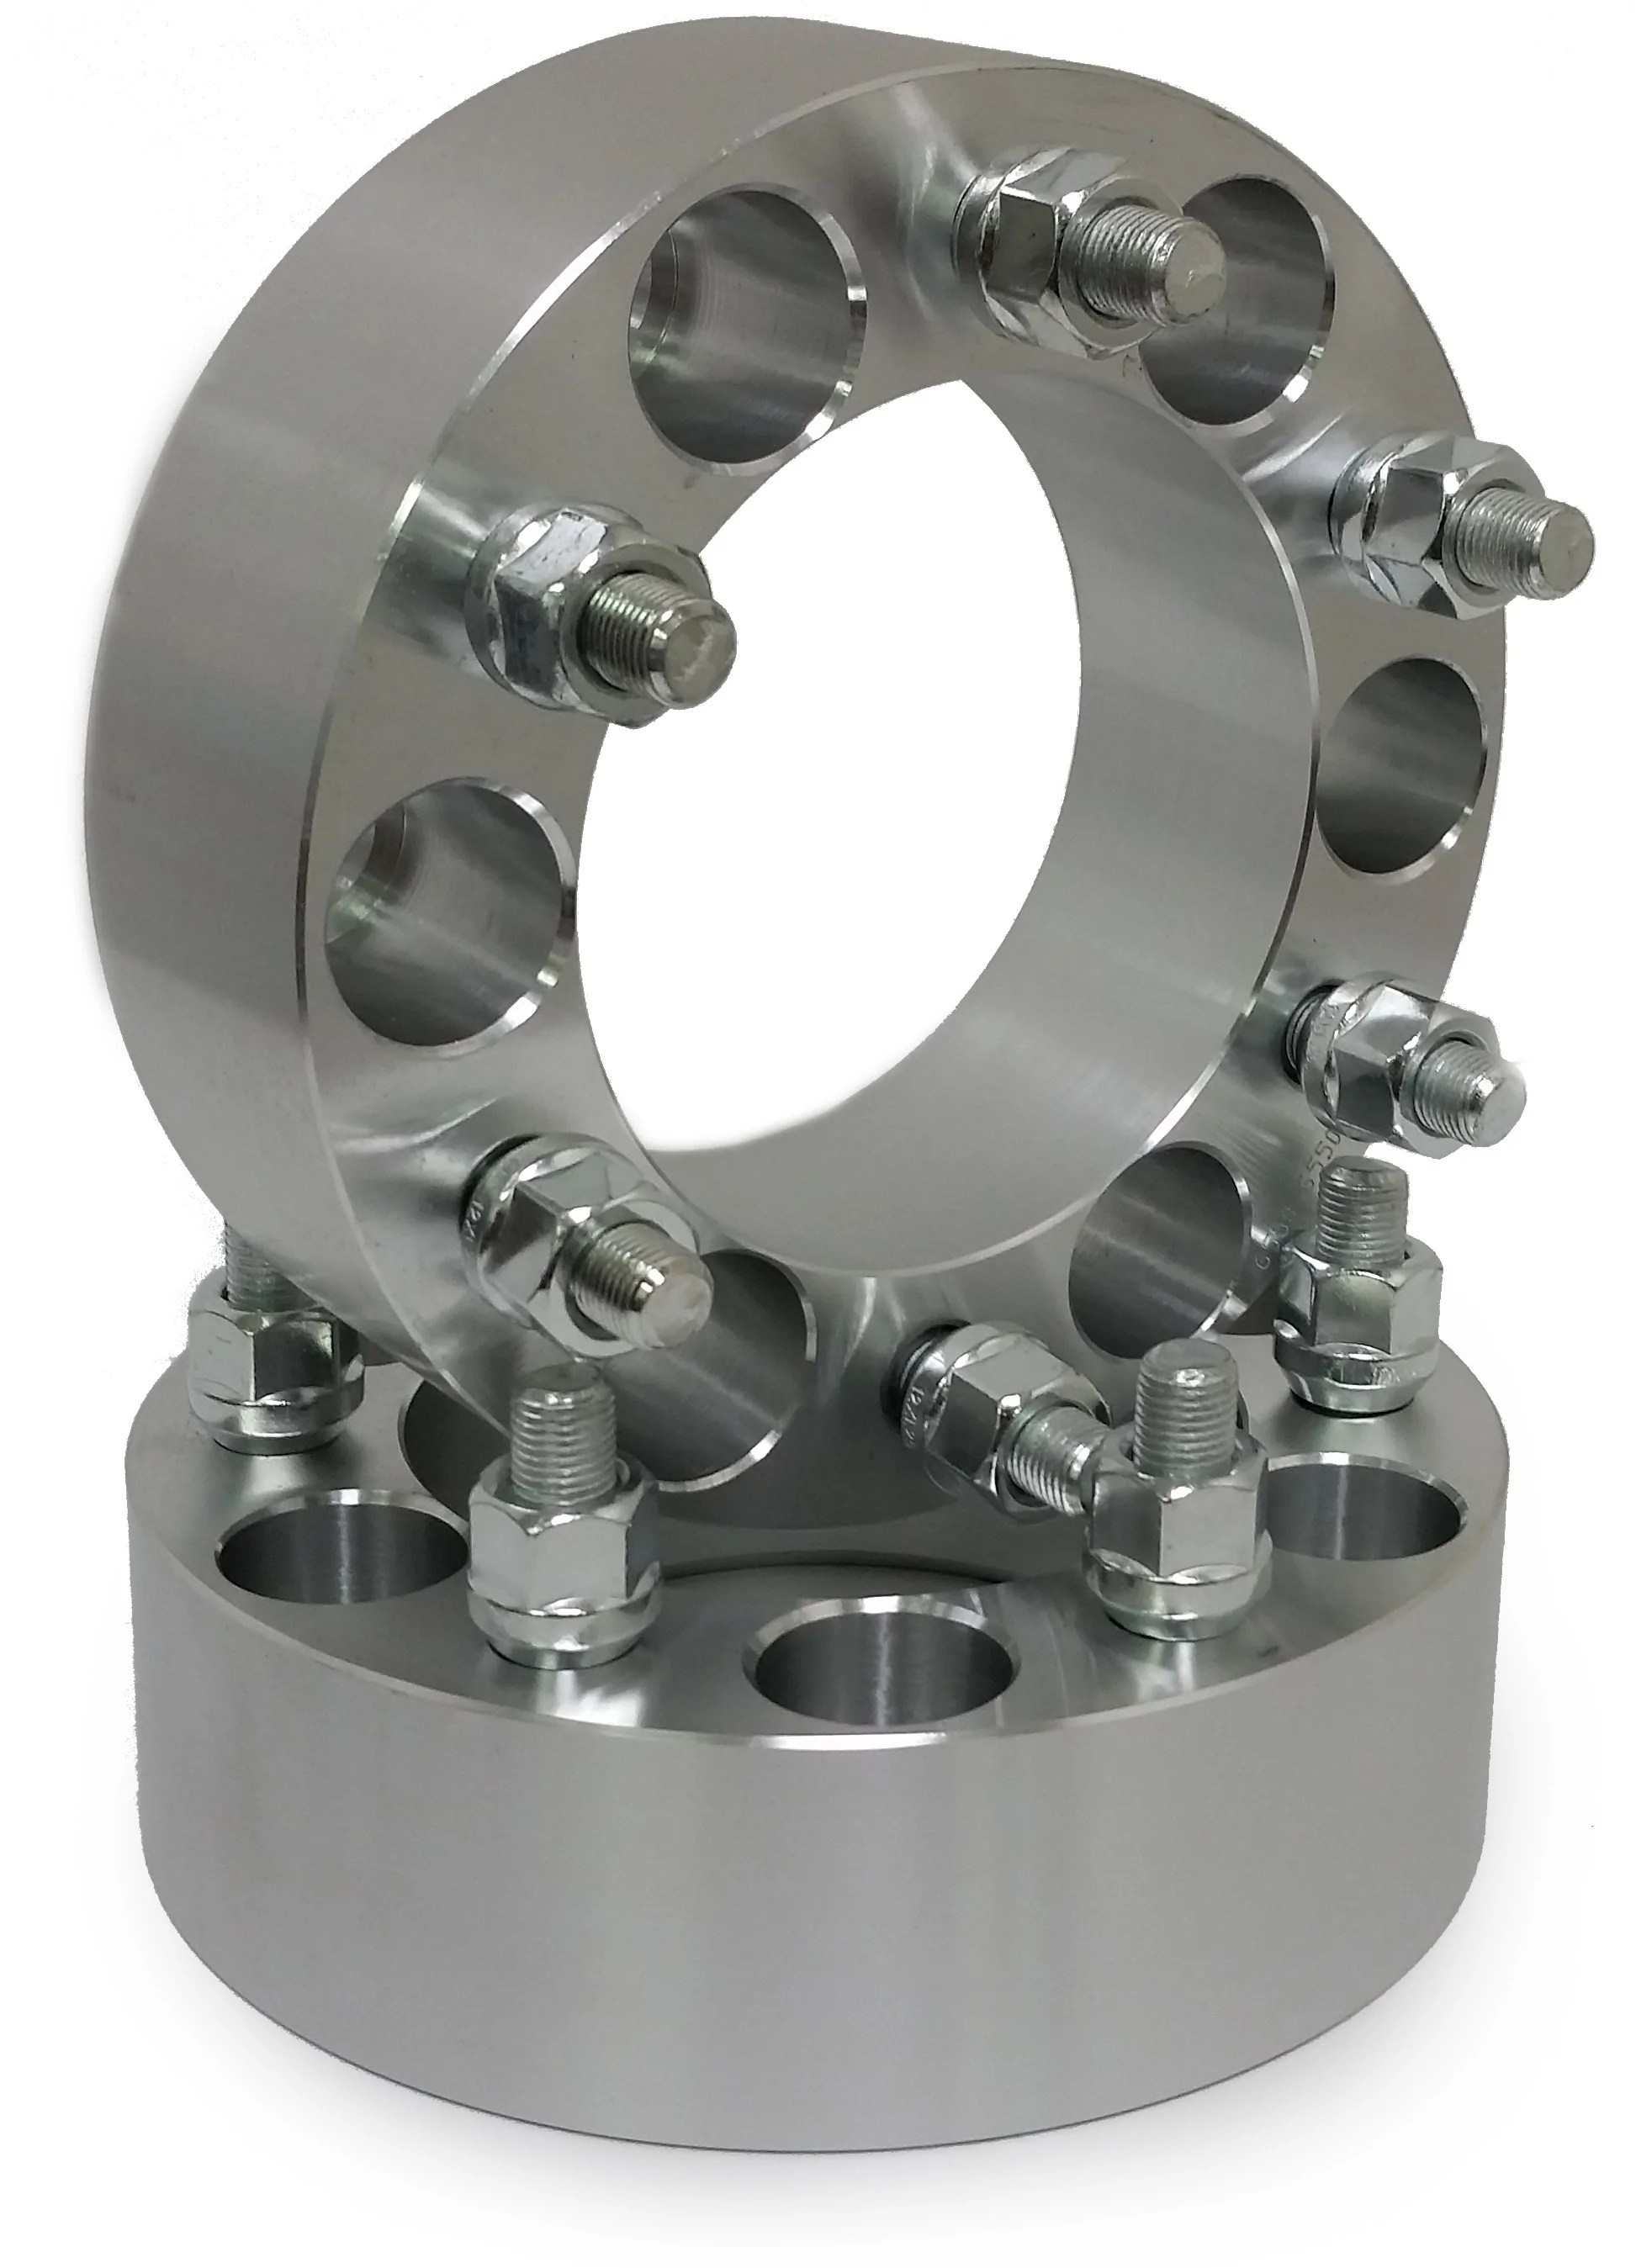 hight resolution of 4 8x200 wheel spacers for 2005 newer ford f 350 super duty dually trucks 14x1 5 studs